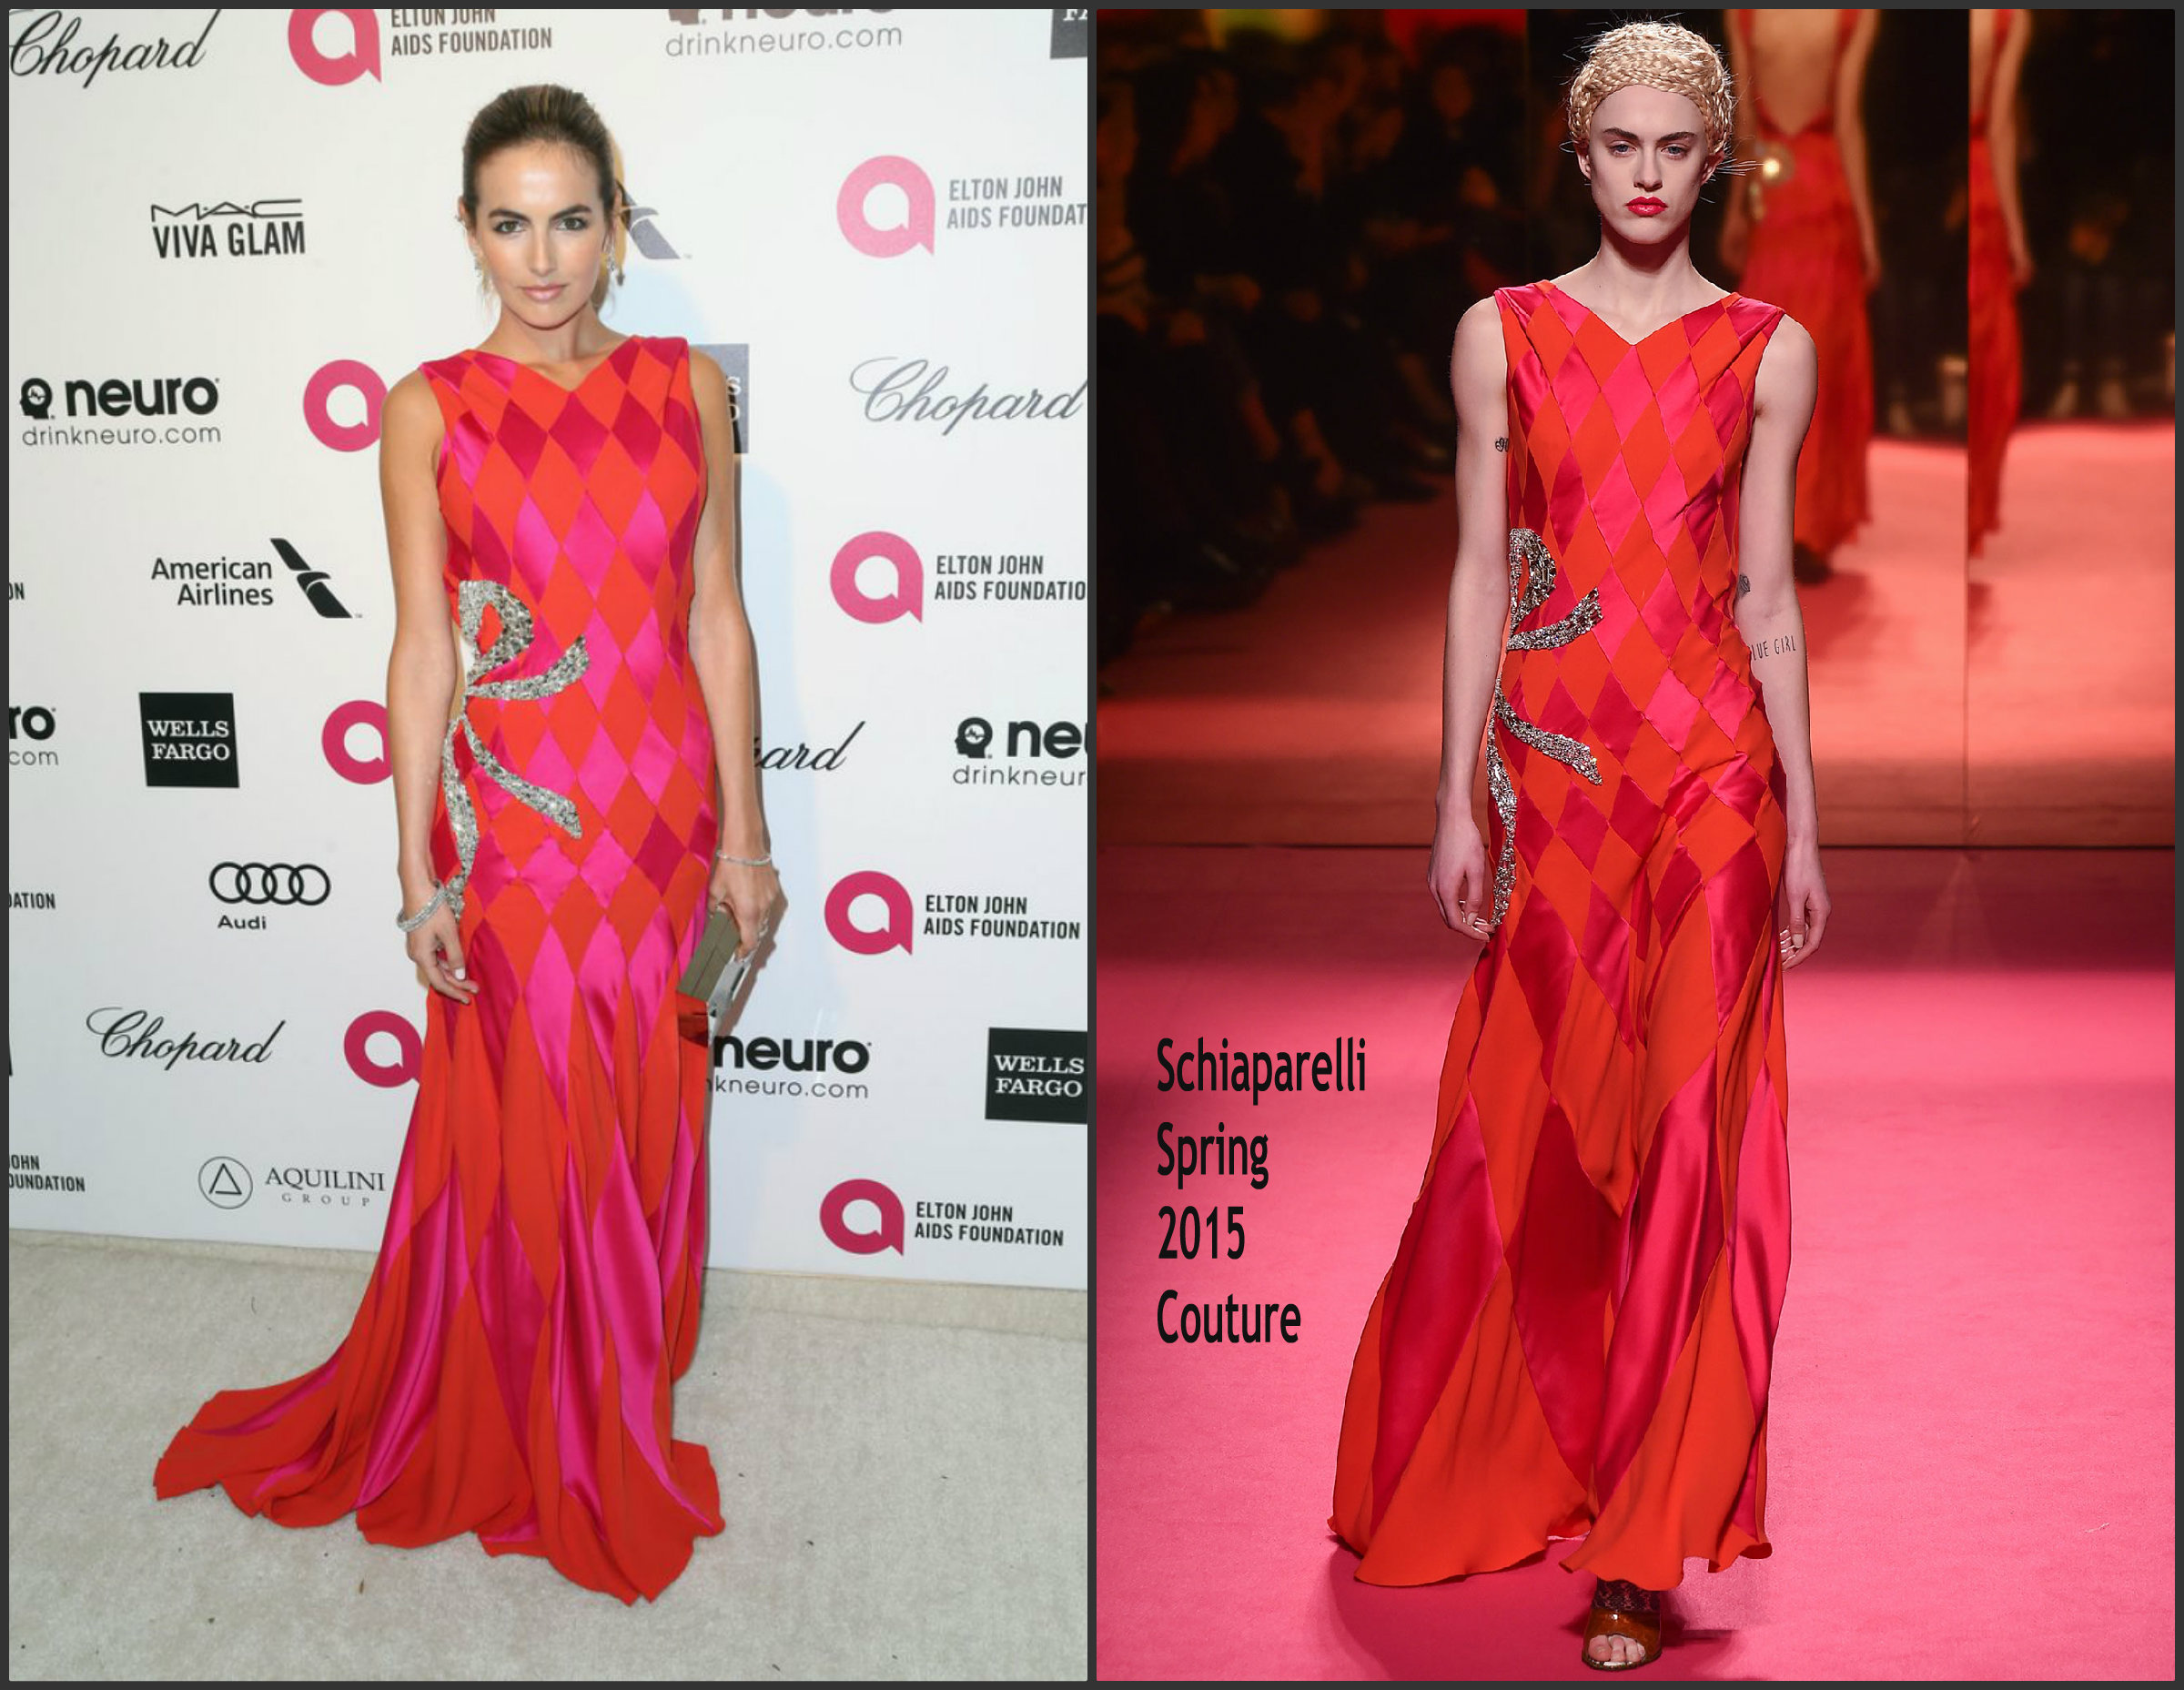 Camilla-Belle-In-Schiaparelli-Couture-at-the-Elton-John's-AIDS-Foundation-Oscars- Viewing -Party